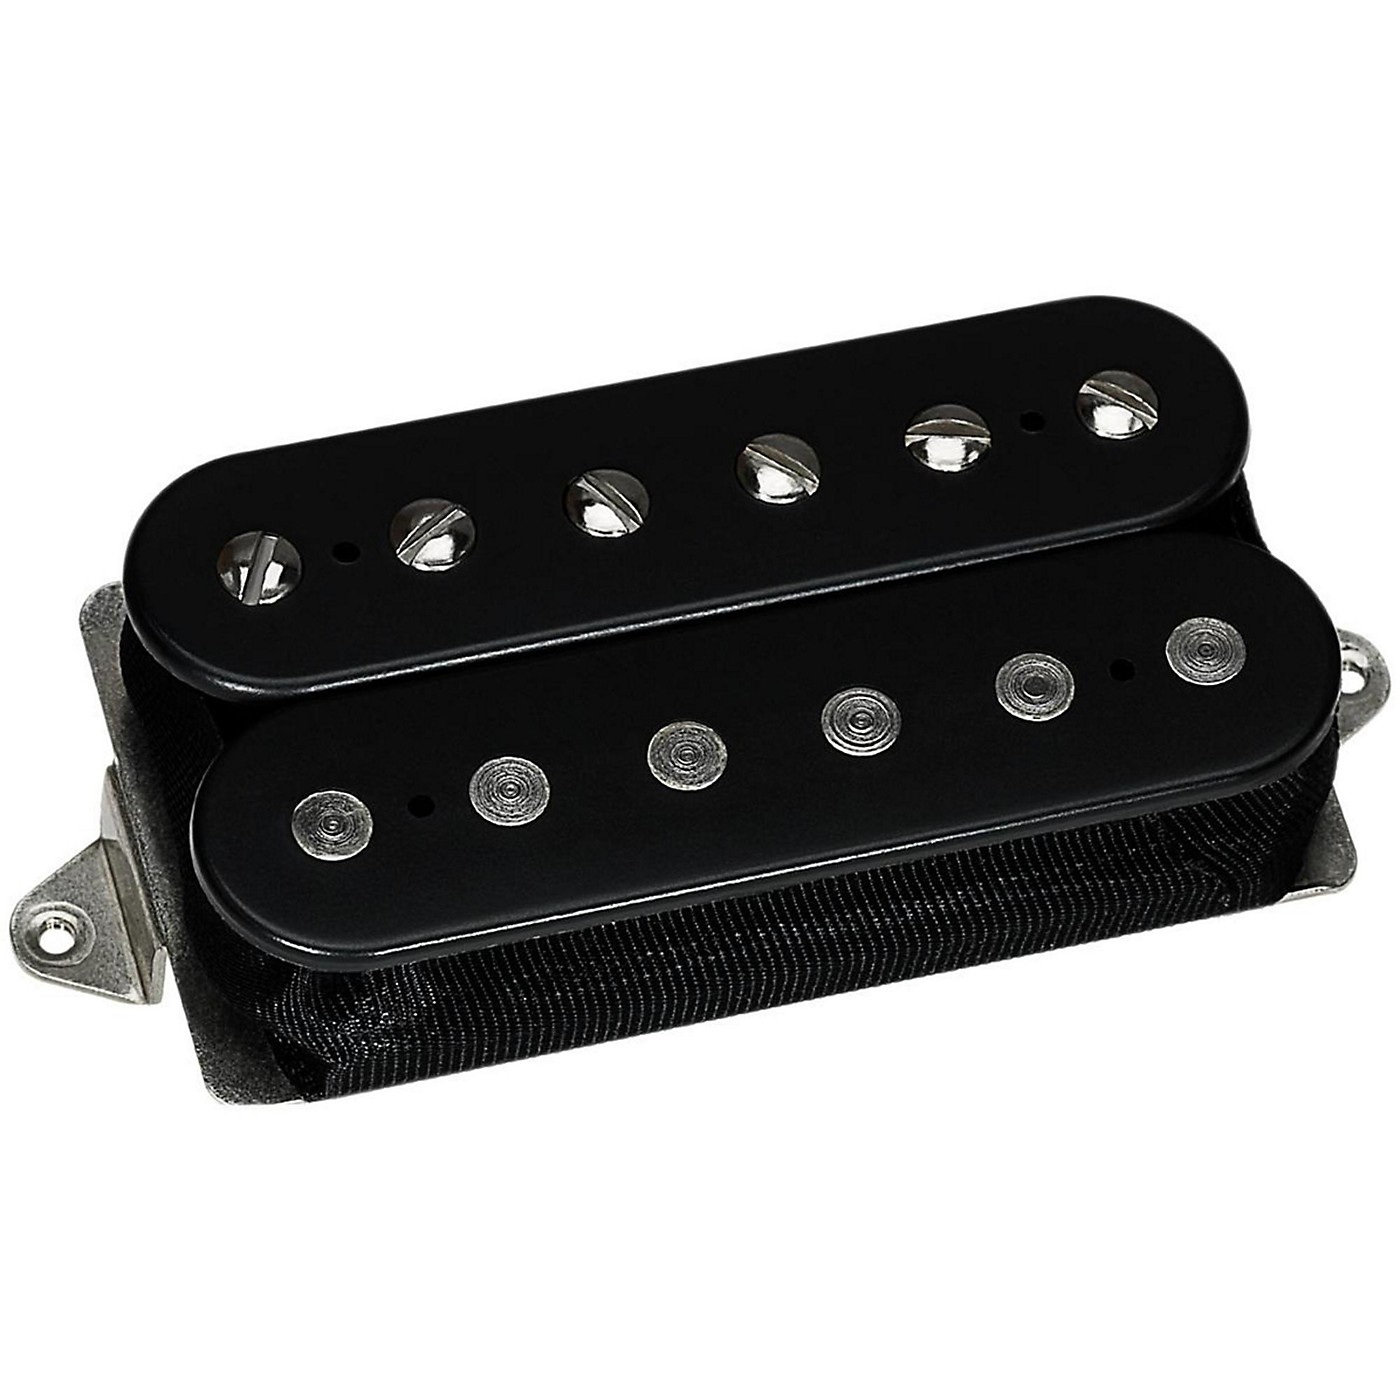 DiMarzio DP256 Illuminator Neck Humbucker Pickup thumbnail